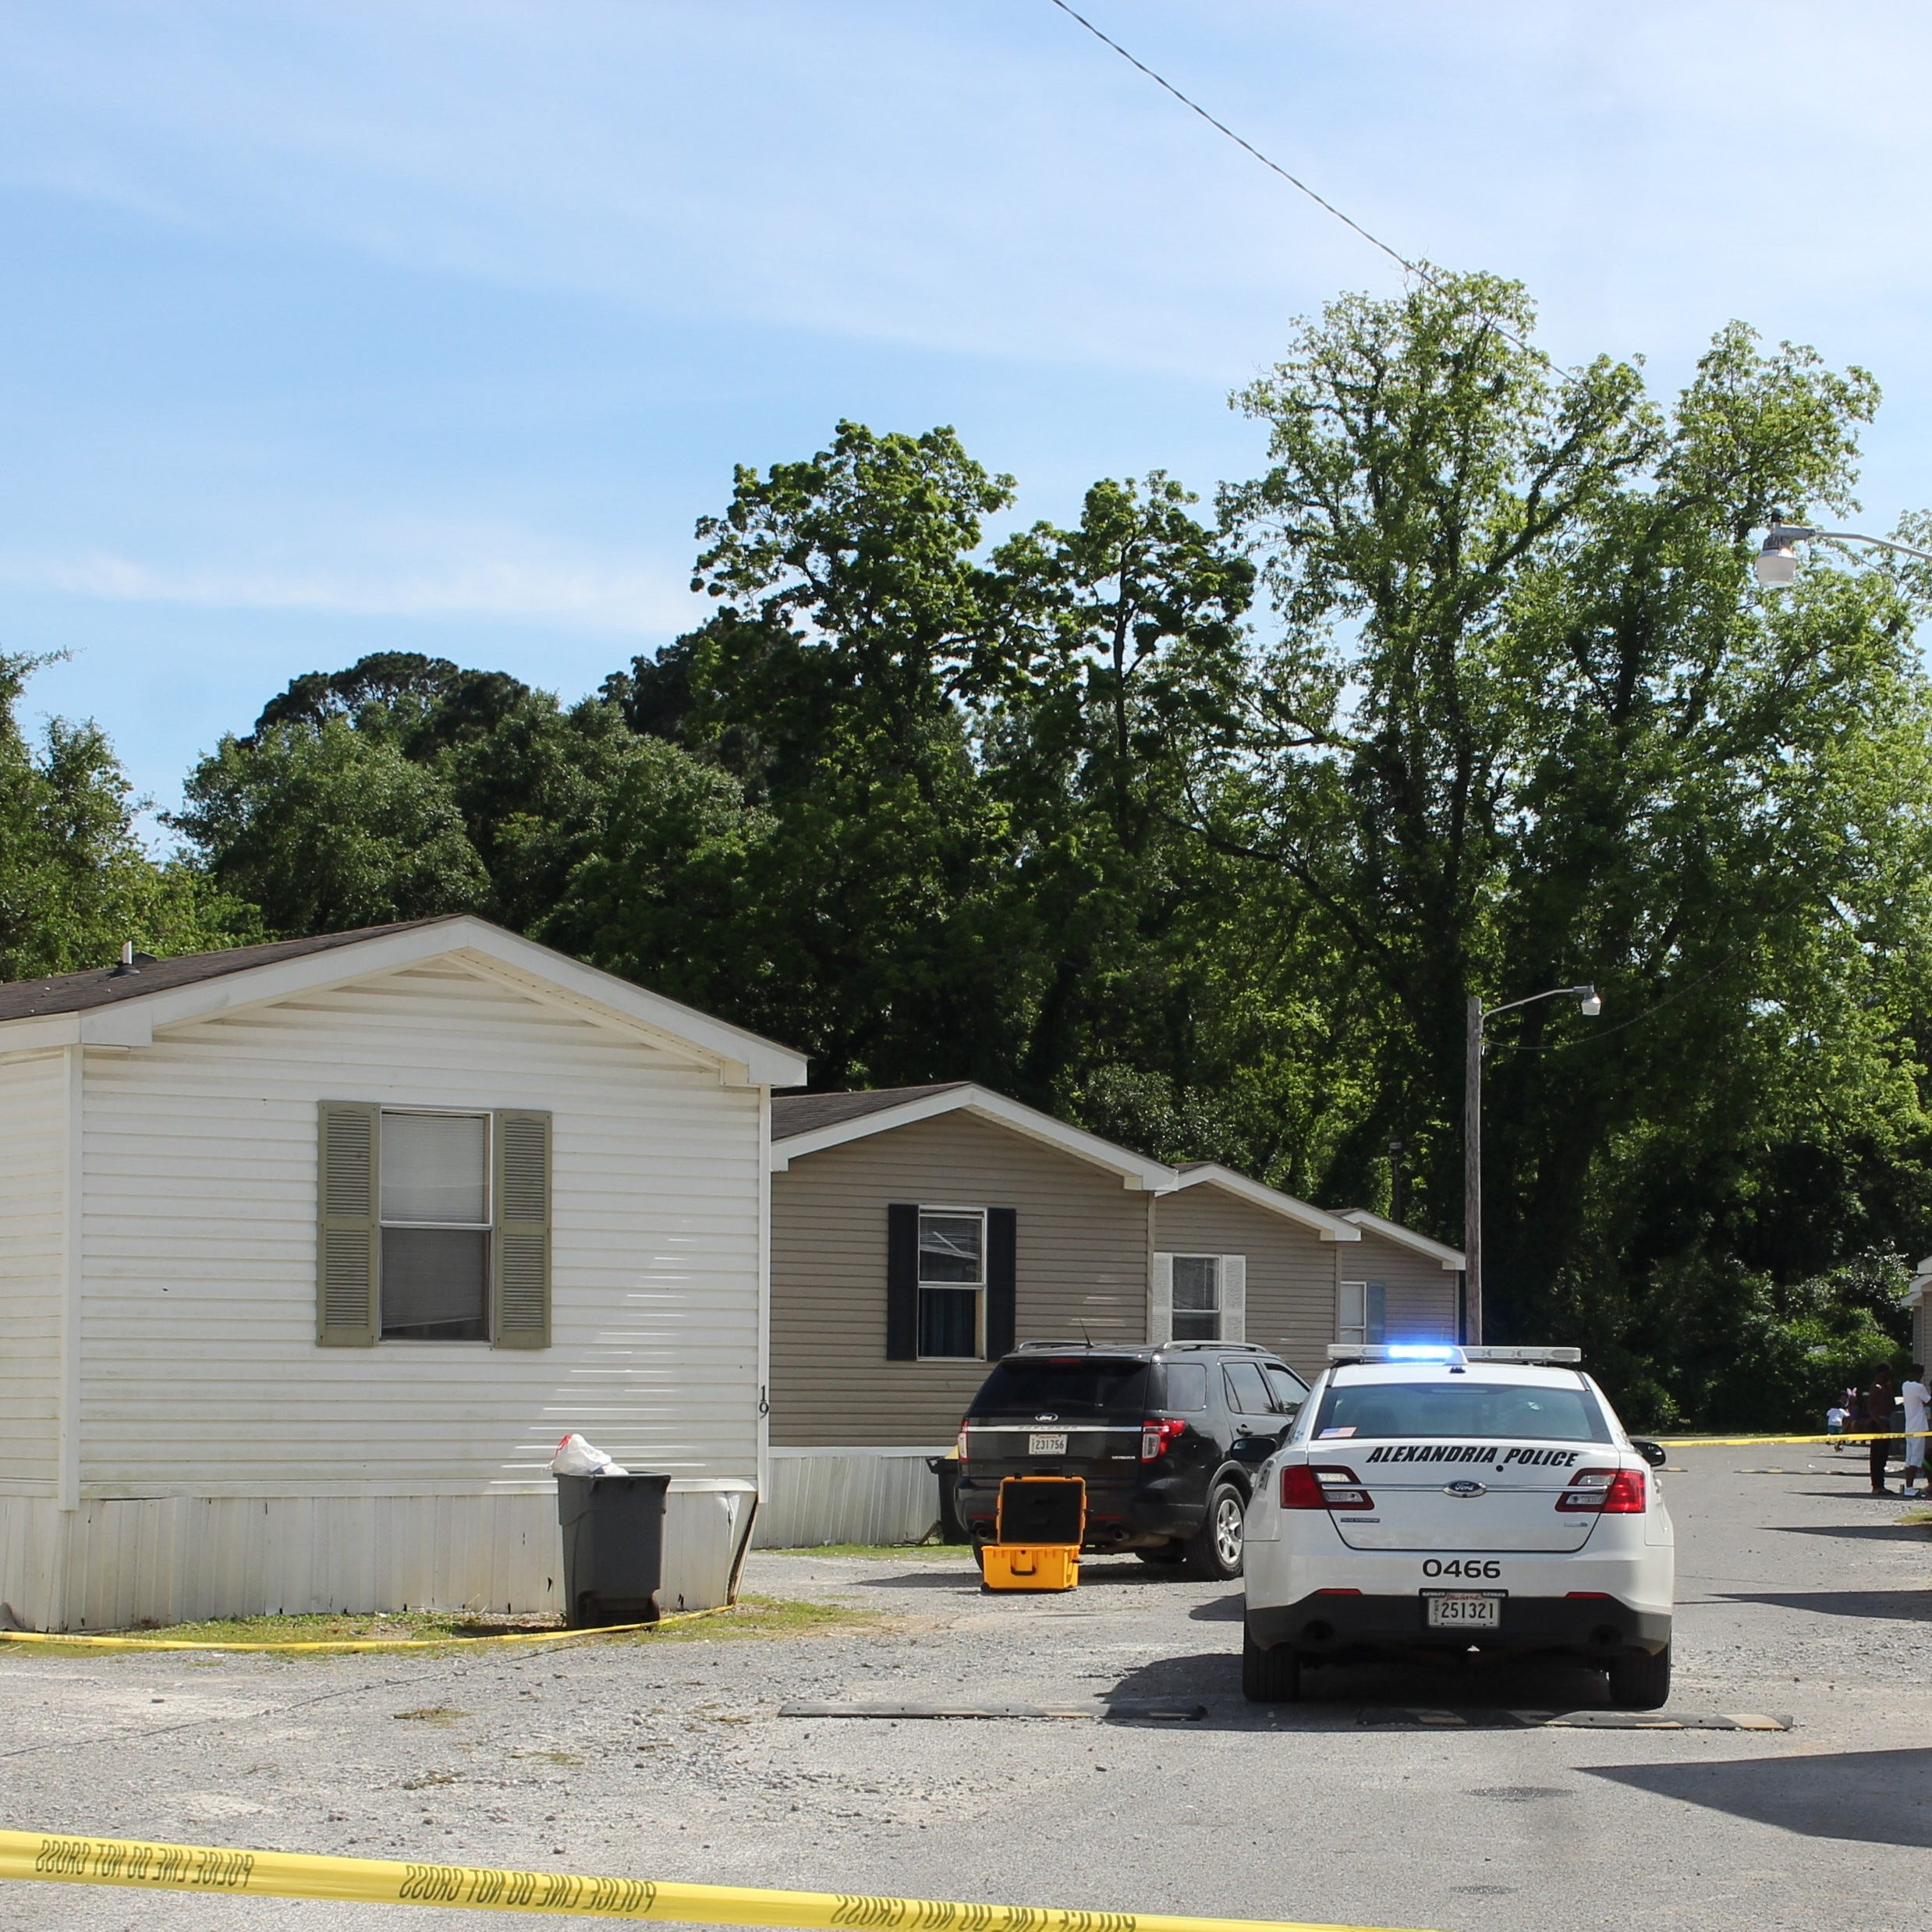 Alexandria Police: Woman shot man before fatally shooting herself